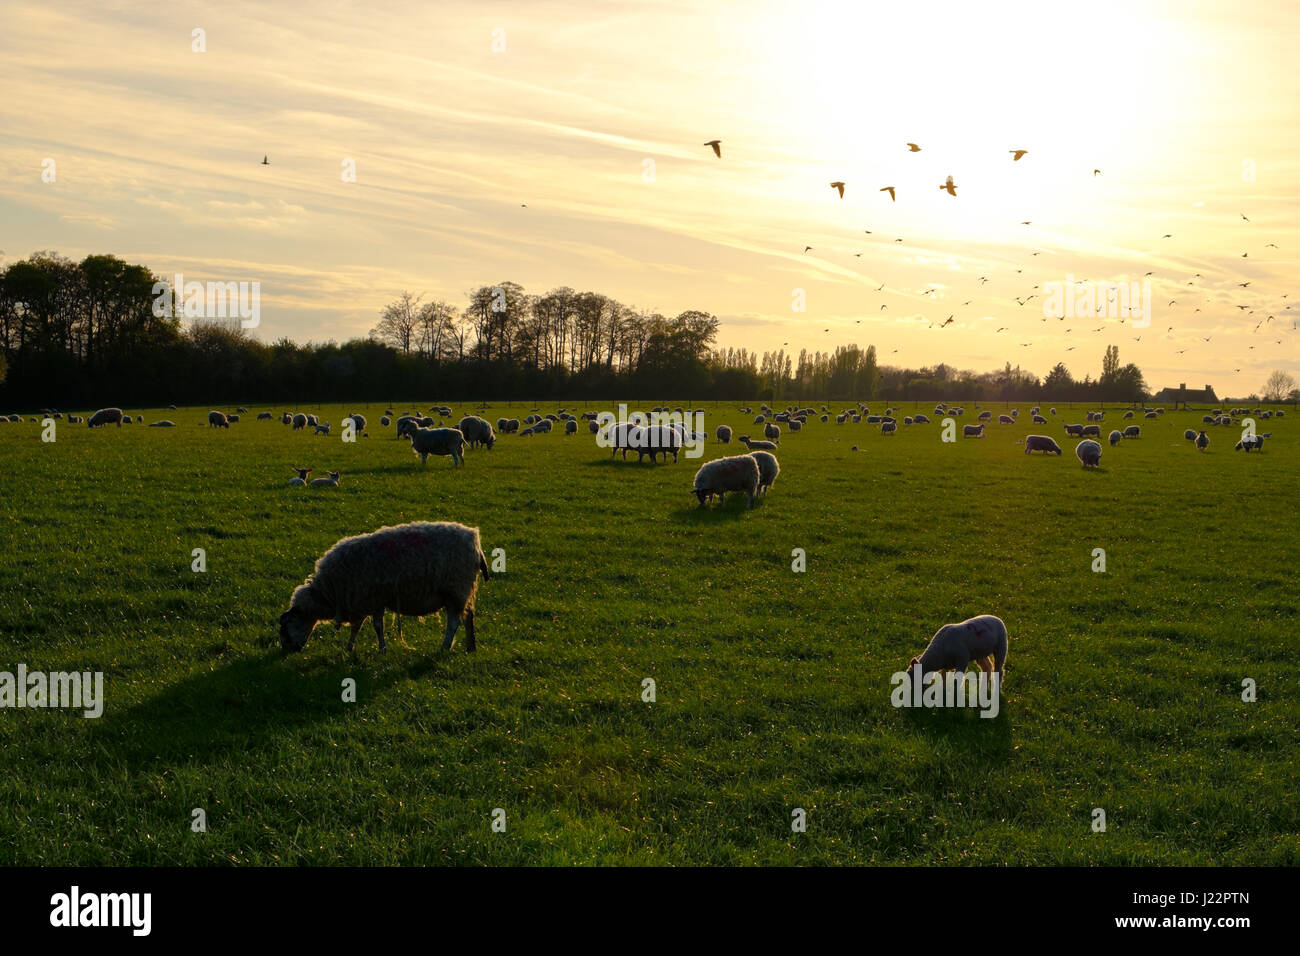 Sheep at golden hour. - Stock Image